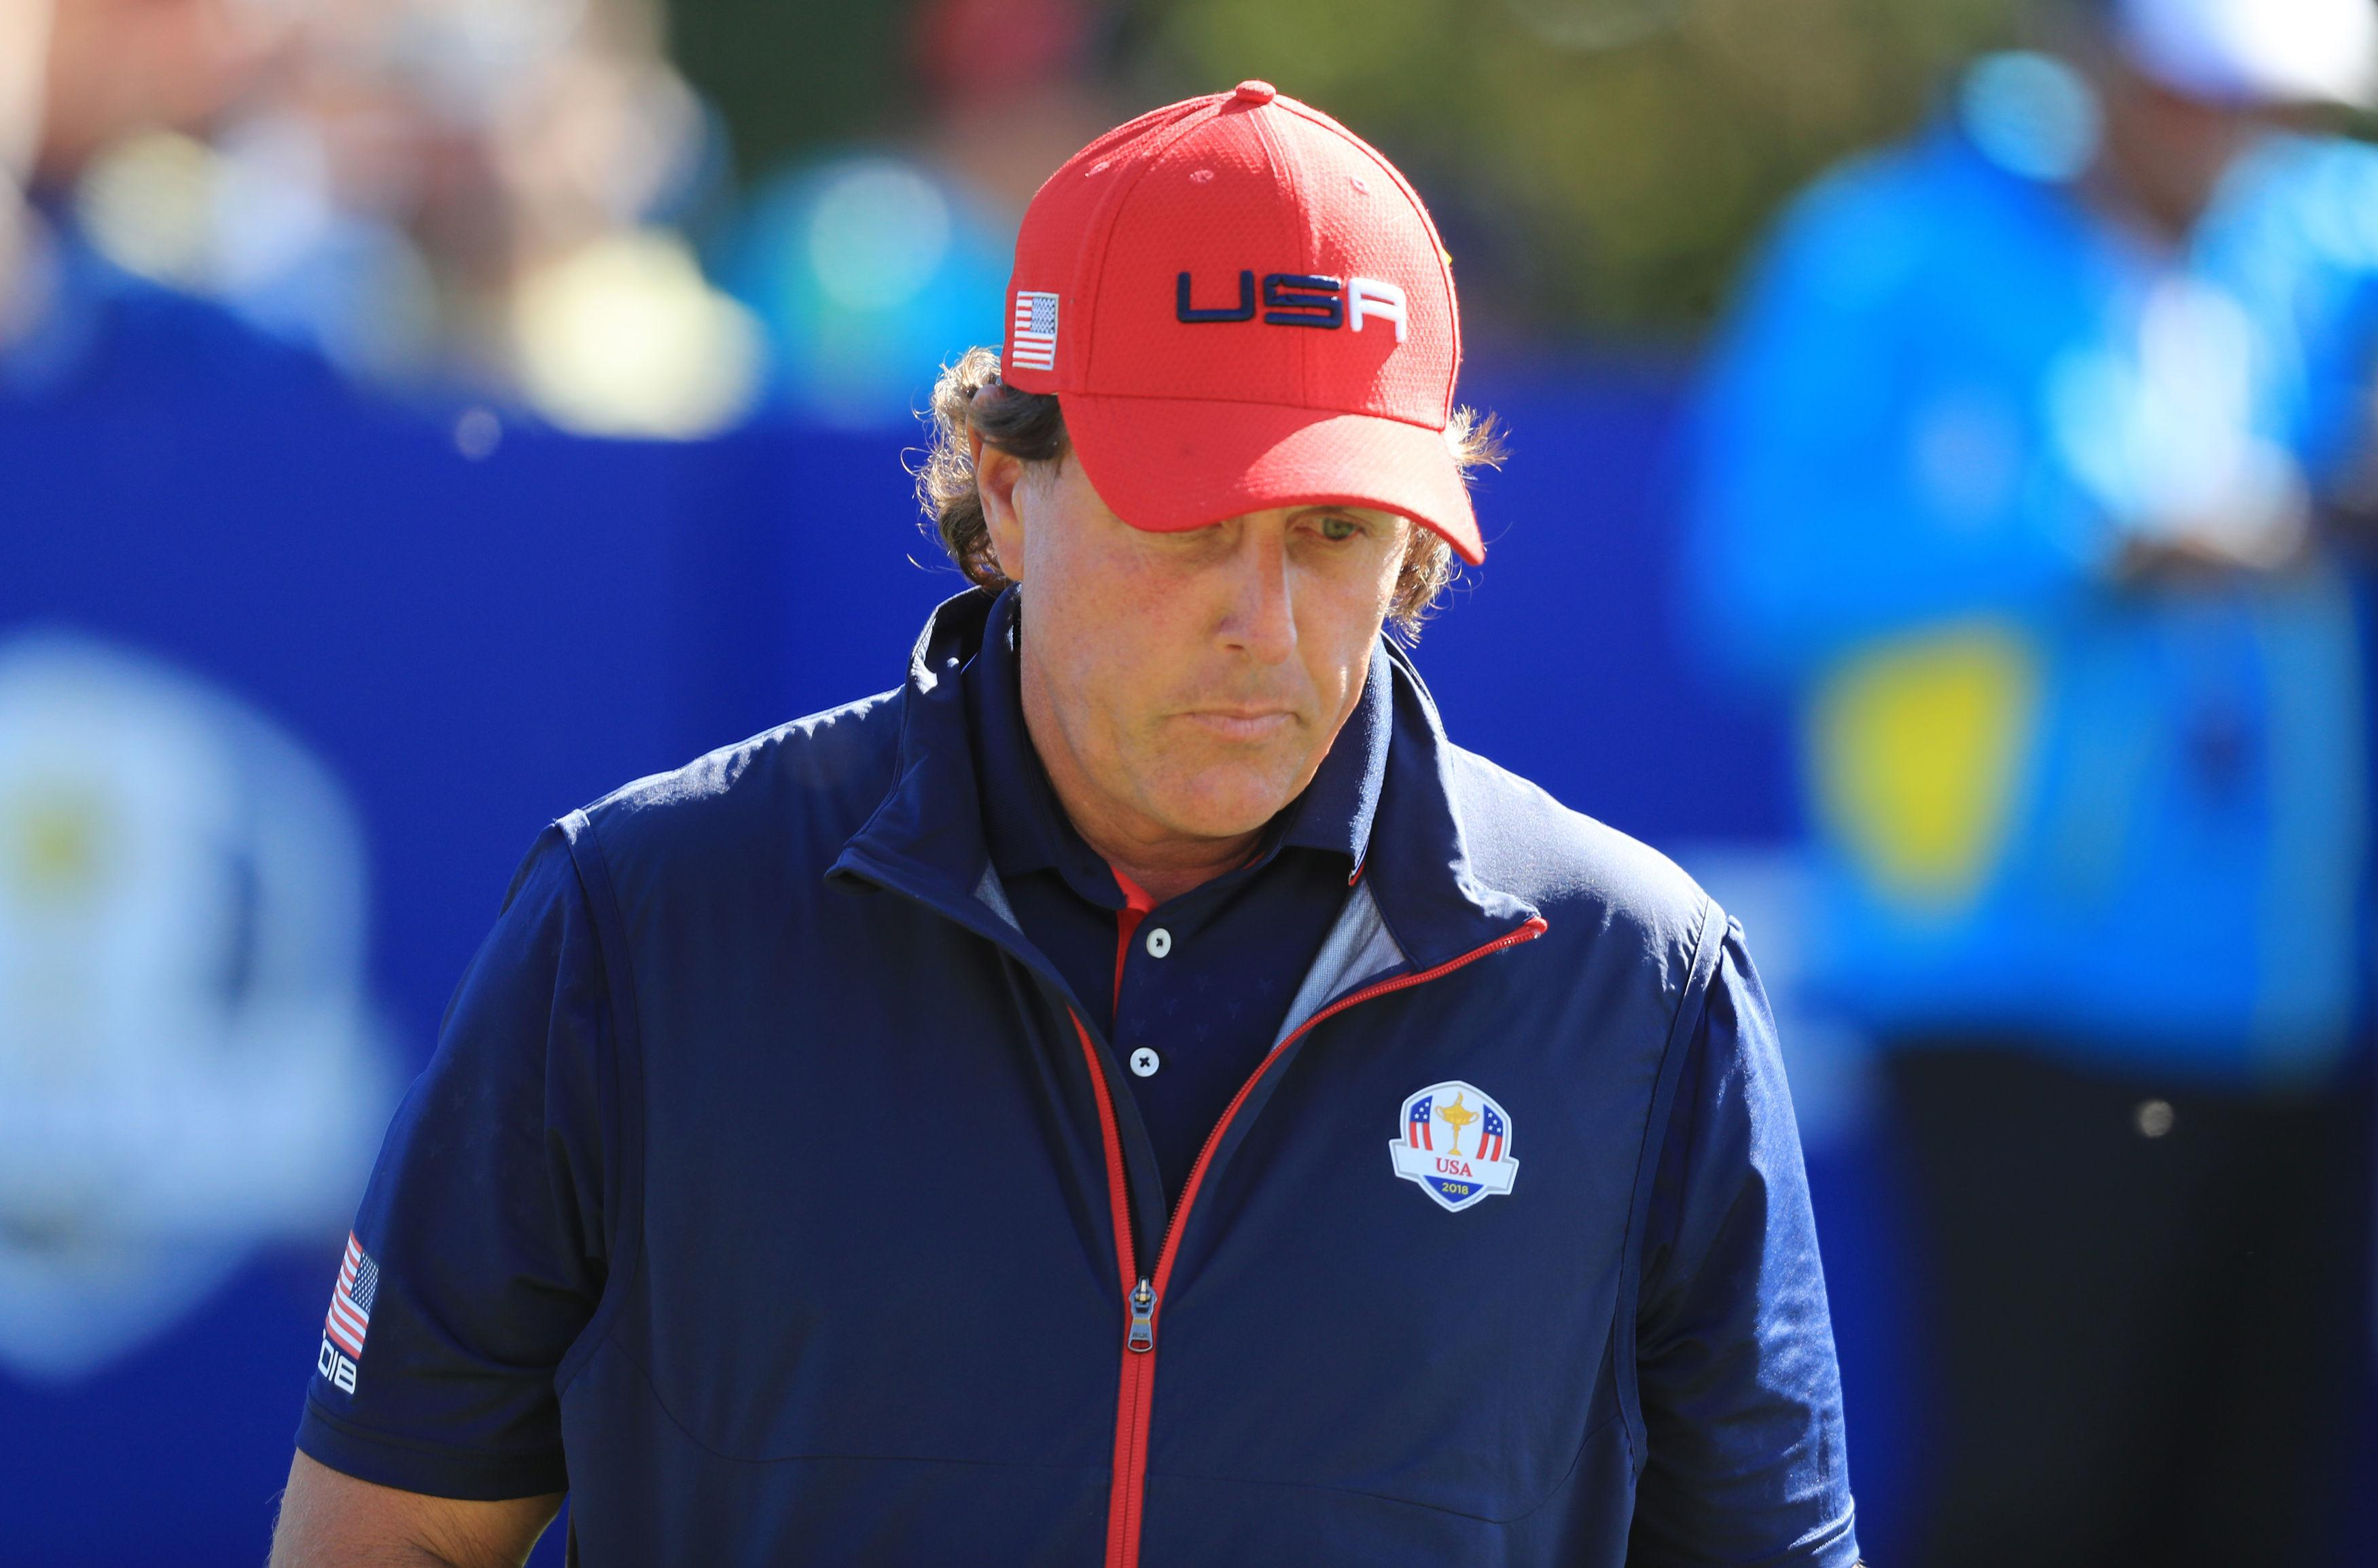 Phil Mickelson failed to win a point this year and has now lost the most matches in Ryder Cup history